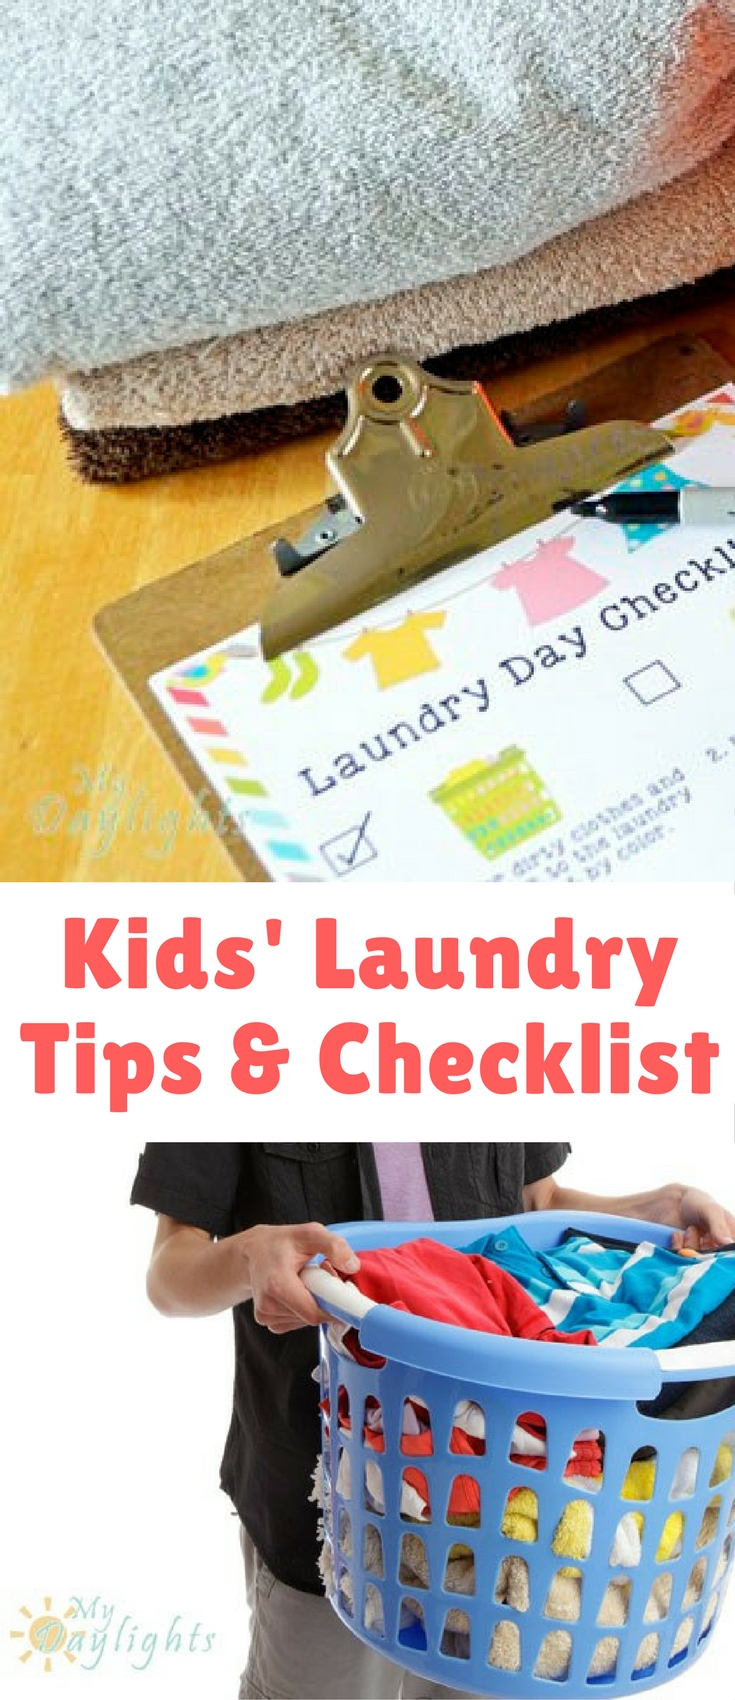 I created this fun checklist for two reasons. First, my oldest loves putting a piece of paper on clipboard and checking things off. It makes him feel like he's in charge! And second, both of my kids are still learning to read. So the checklist needed to have fun pictures that could help guide them through the process: